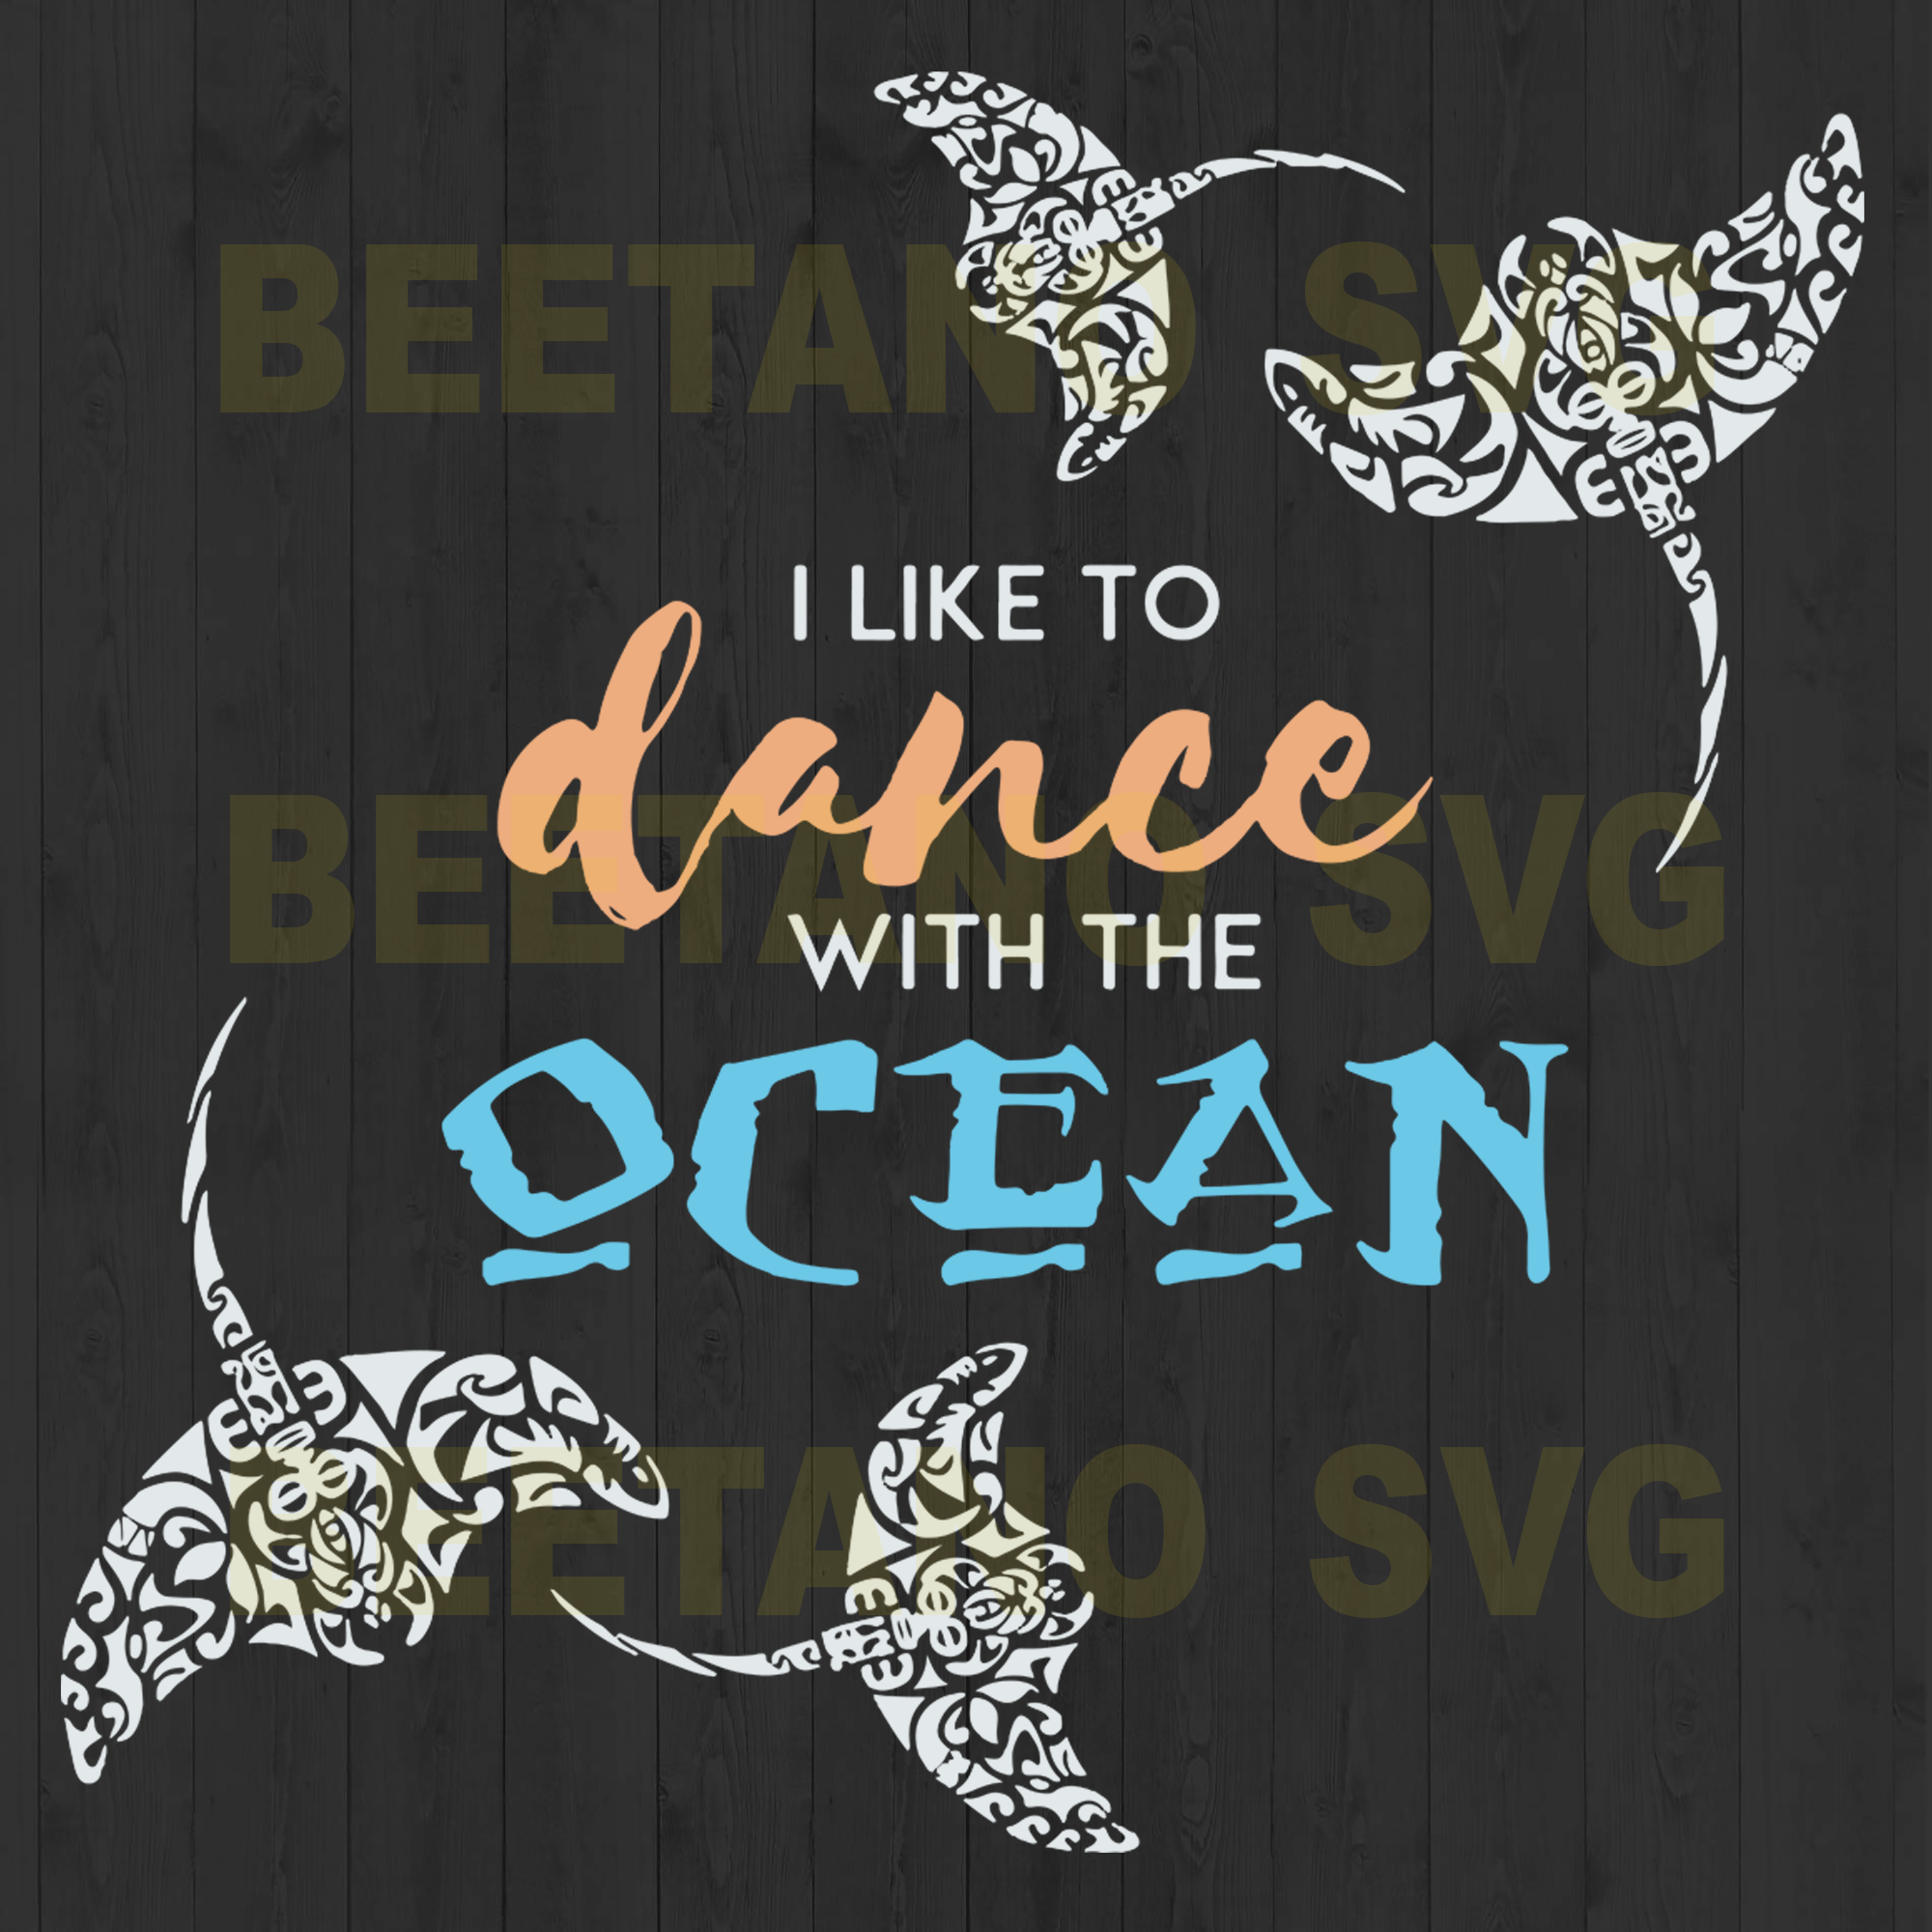 I Like To Dance With The Ocean Svg Moana Svg Moana Svg Files Disney Beetanosvg Scalable Vector Graphics